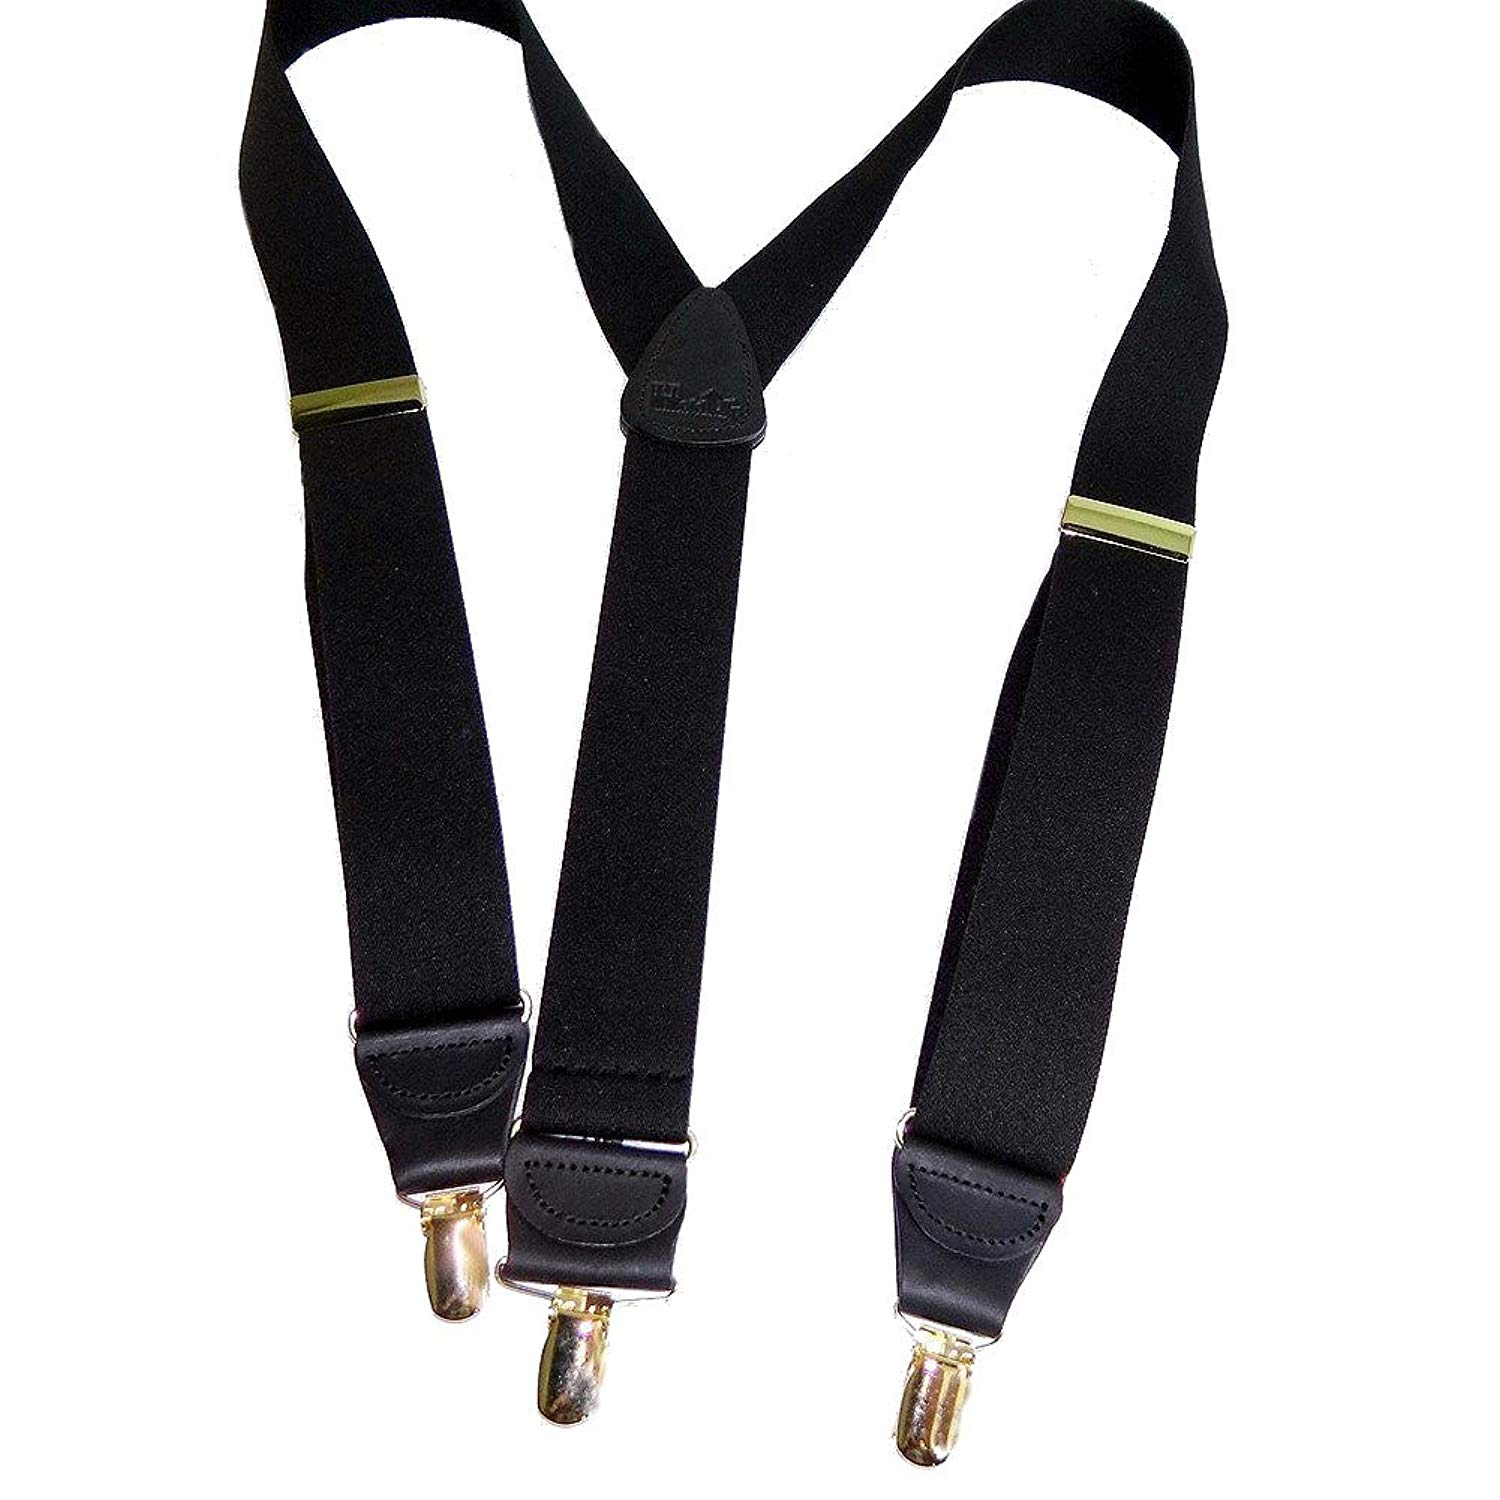 a25ccc6f2 Hold-Ups Y-back All Black Casual Series Holdup Suspenders Patented No-Slip